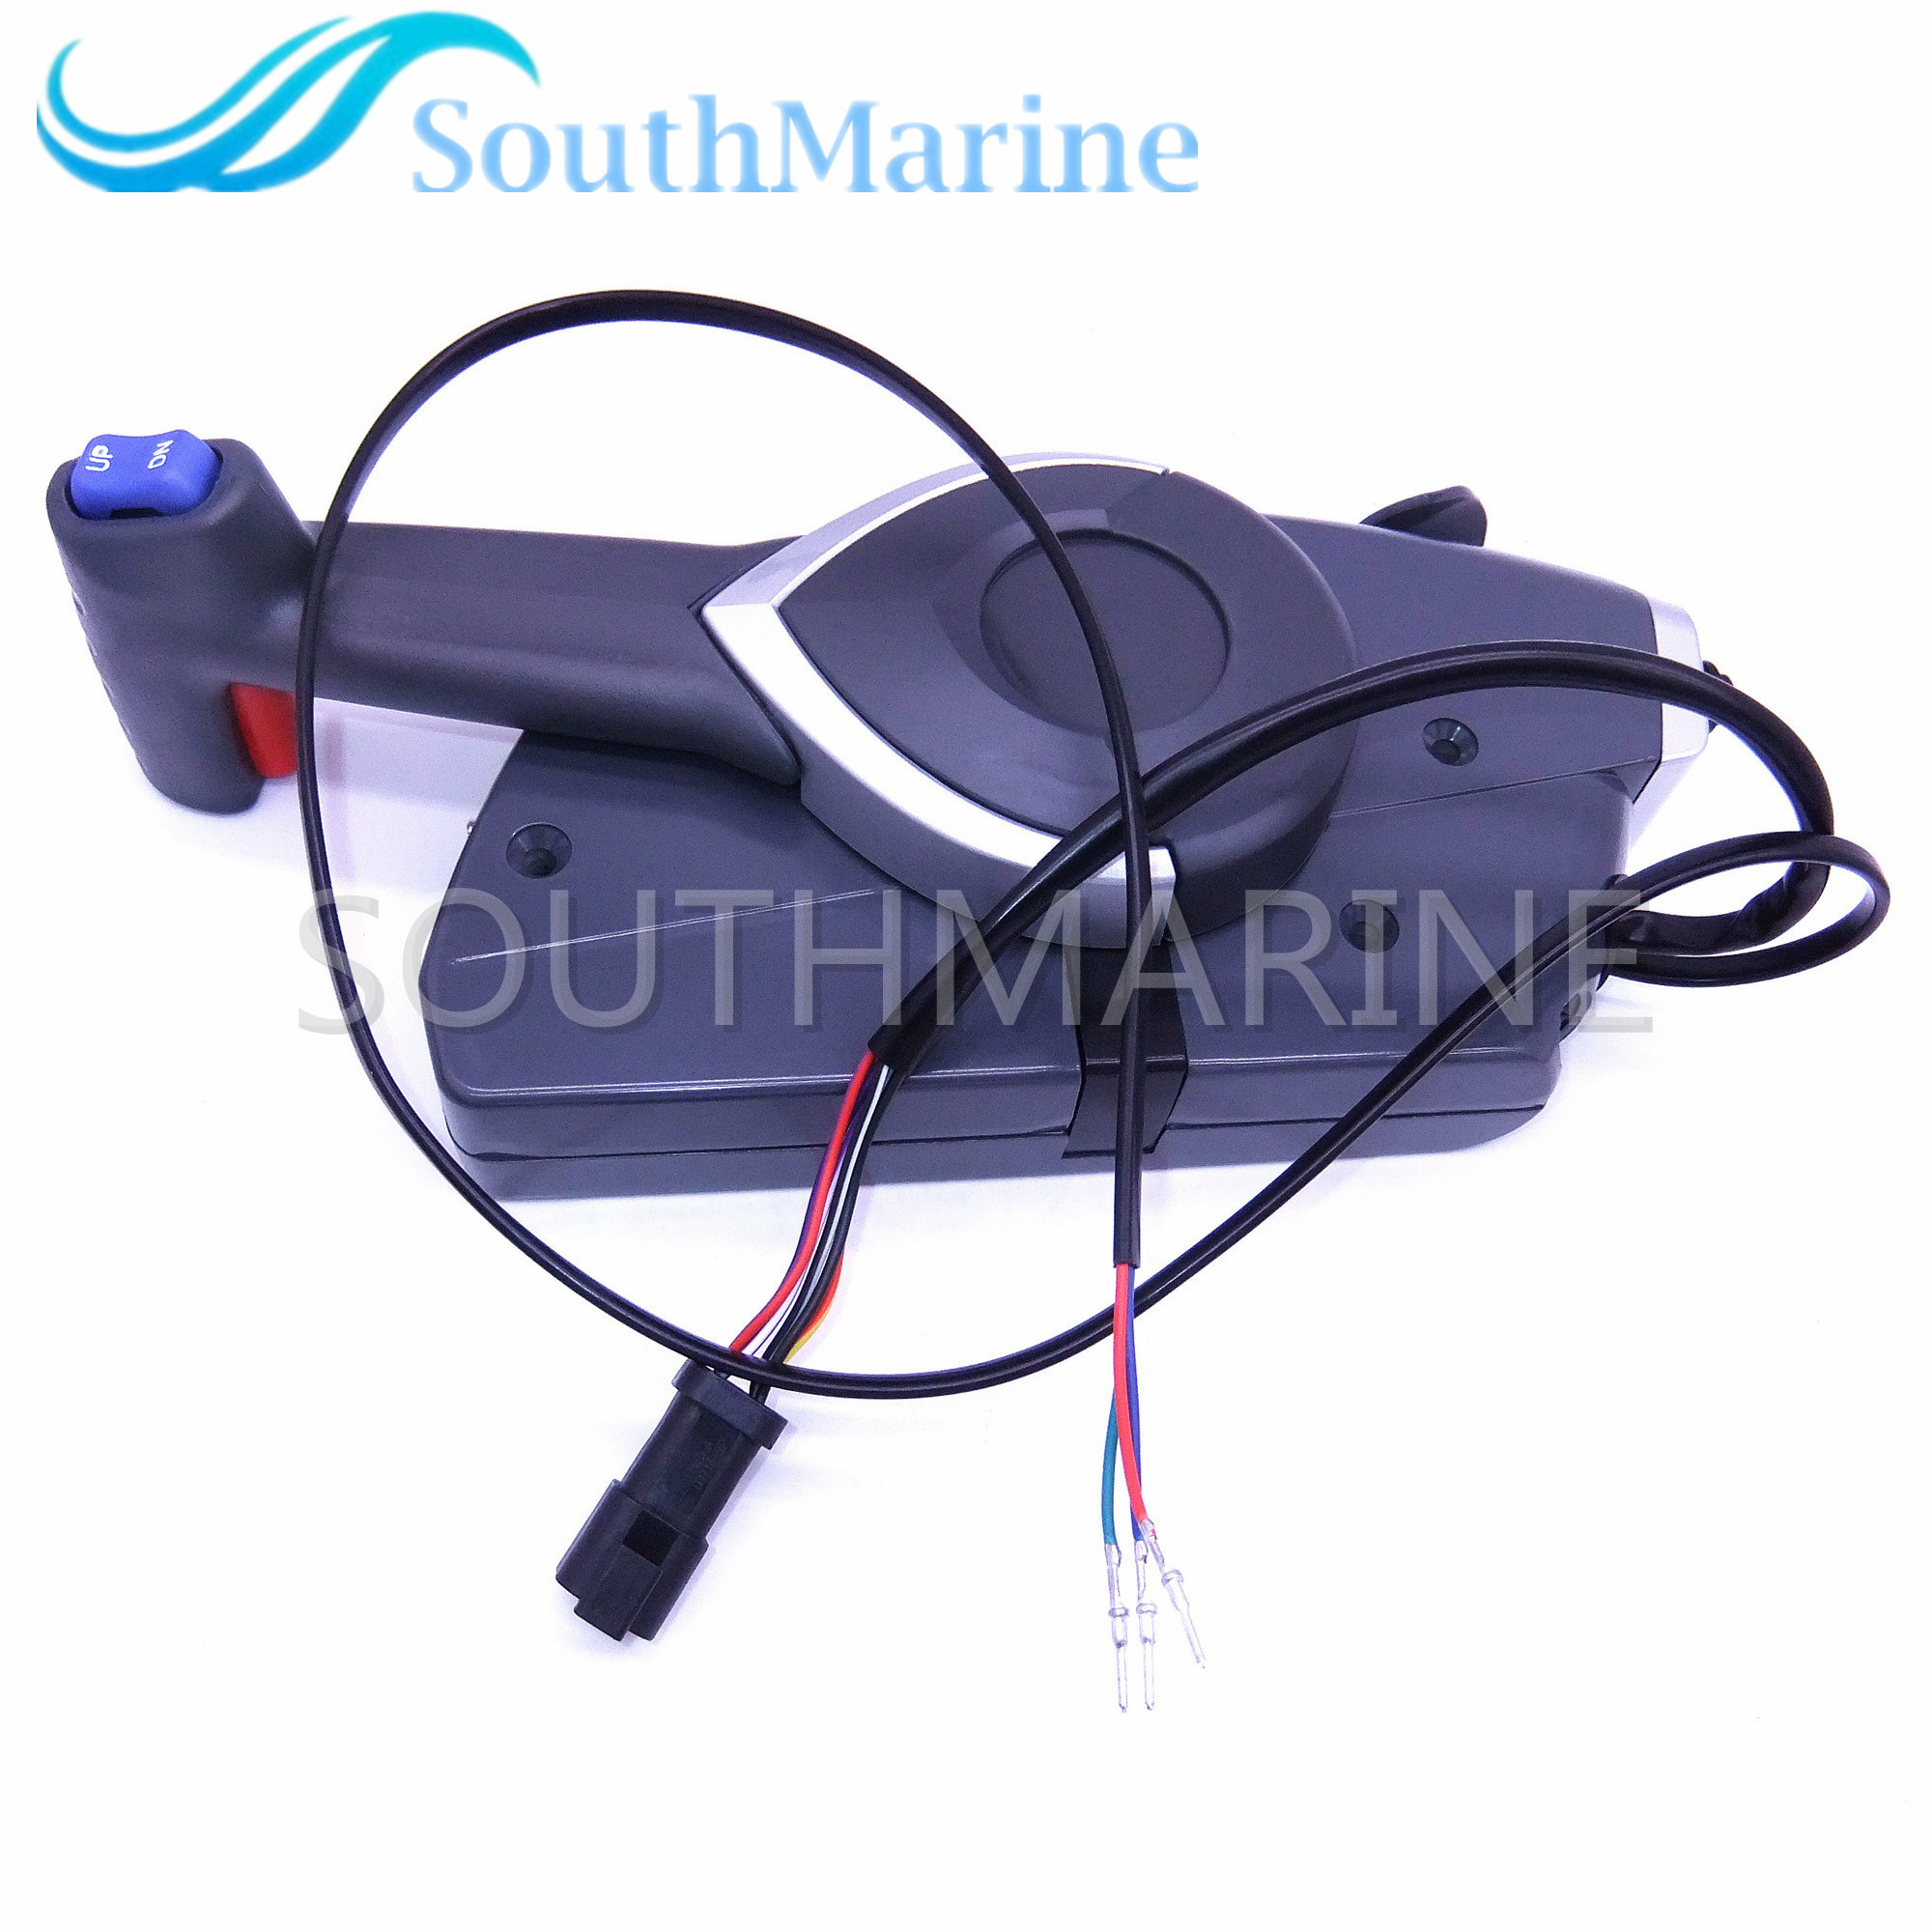 Aliexpress.com : Buy Outboard Engine 5006180 Boat Motor Side Mount on omc remote control, omc control box, omc oil cooler, omc voltage regulator, omc gauges, omc inboard outboard wiring diagrams, omc neutral safety switch, omc cobra parts diagram, omc fuel tank, omc cobra outdrive,